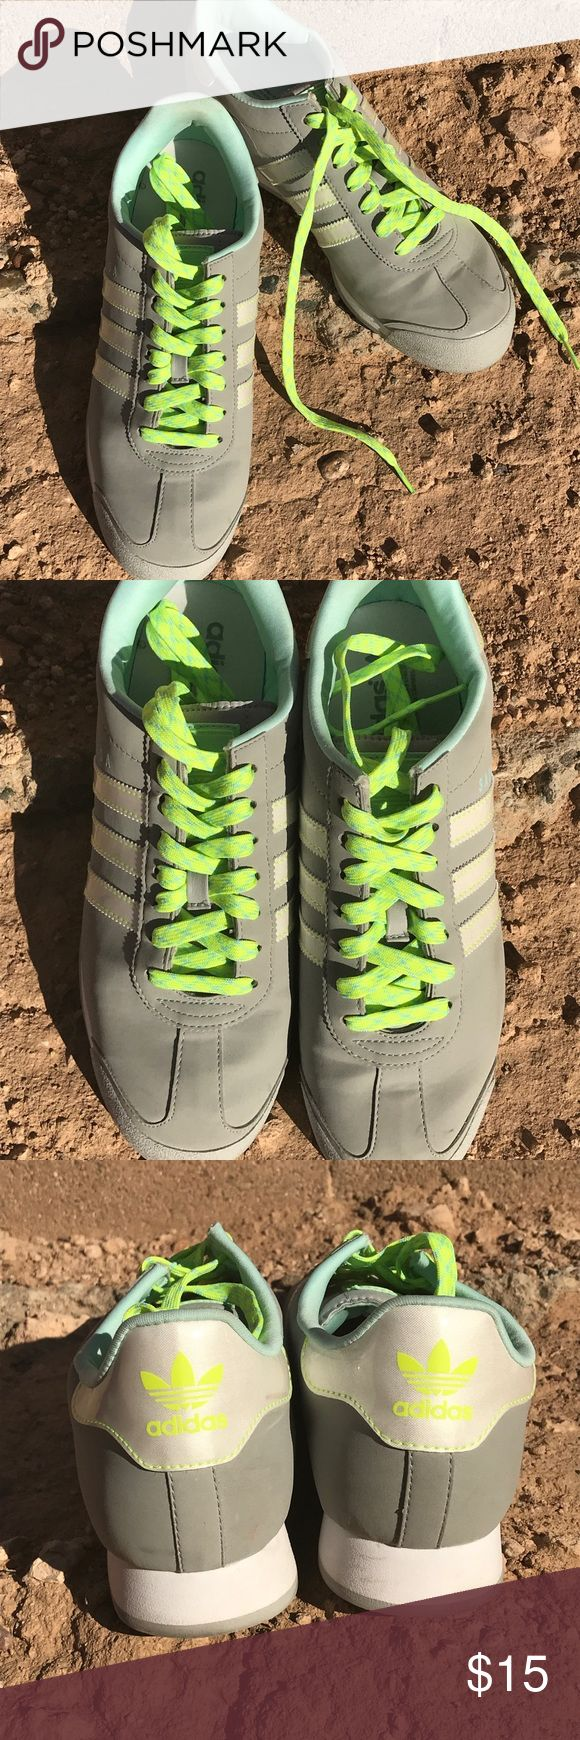 Adidas Samoa Light grey with neon green and light blue shoelaces adidas Shoes Sneakers